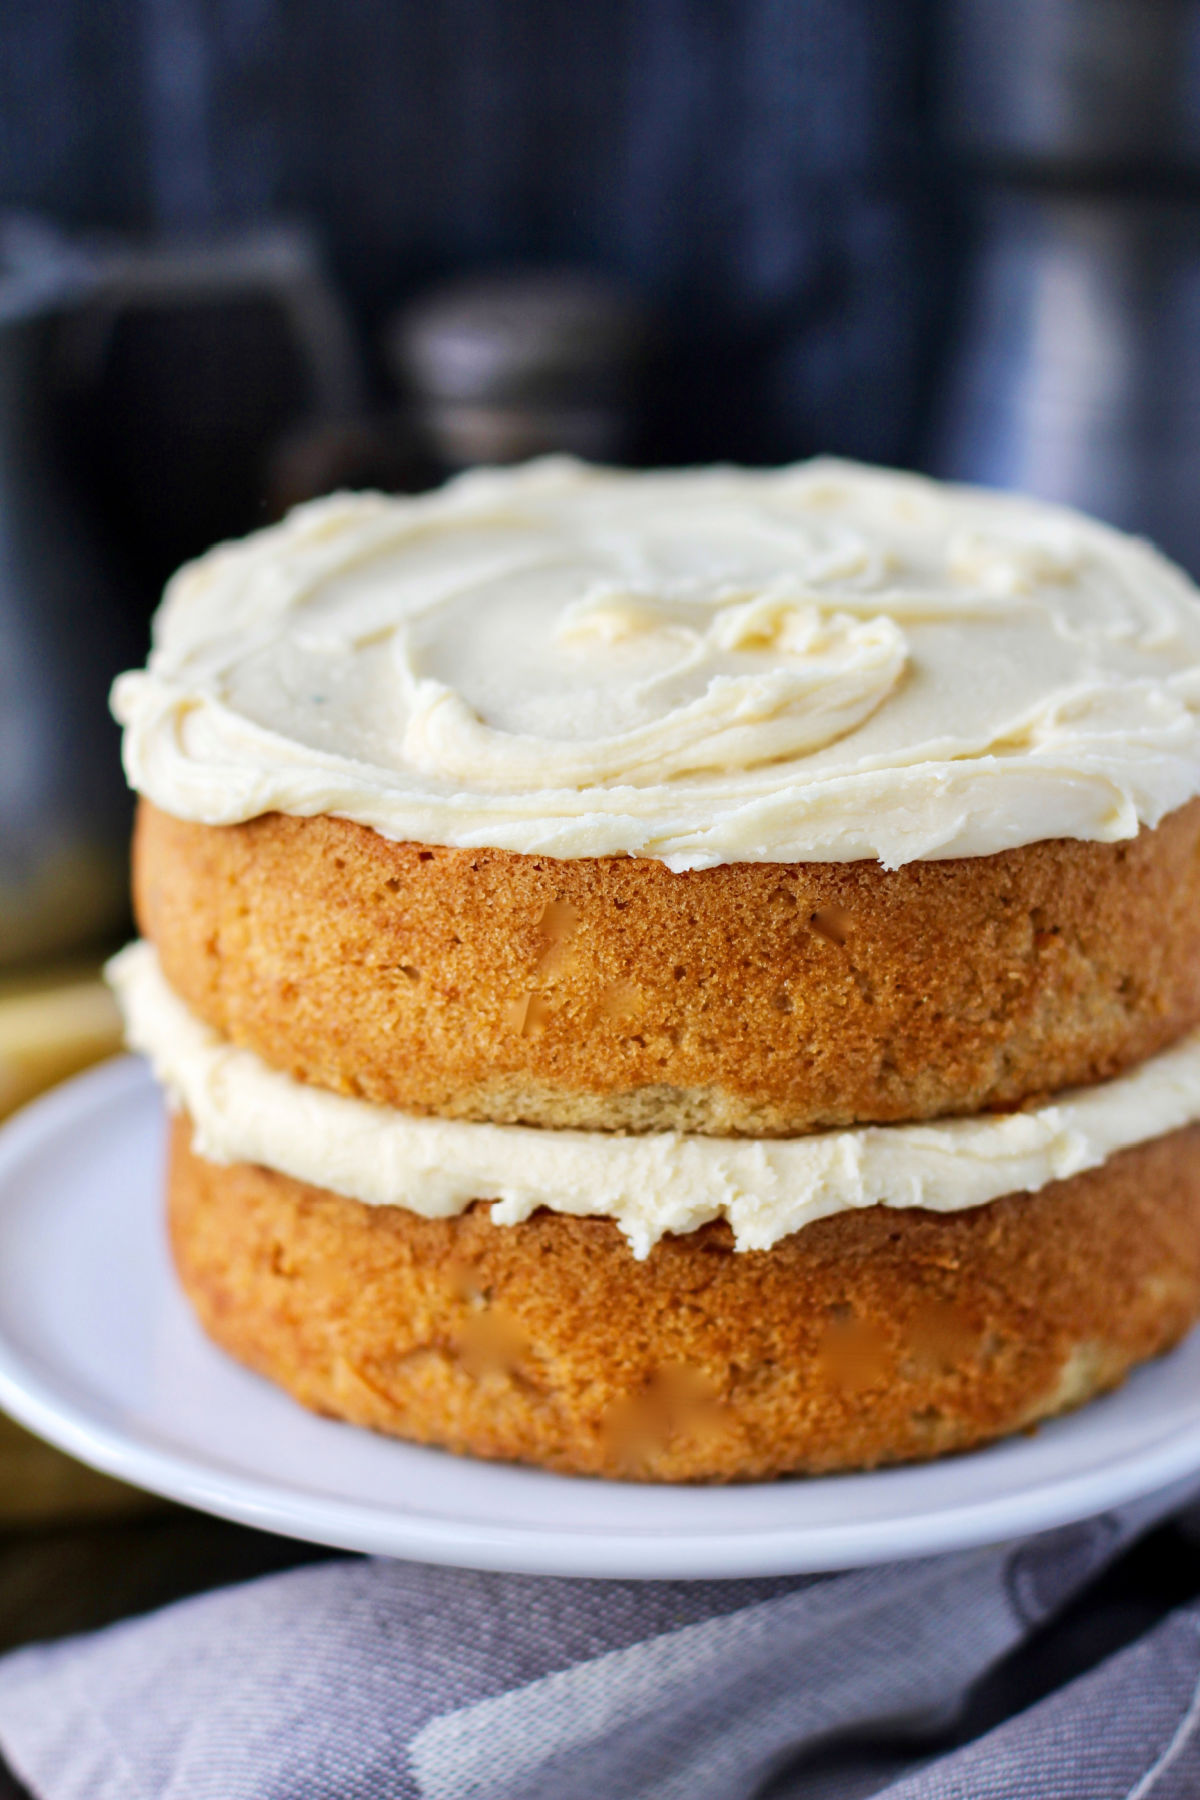 Maple cake with maple frosting.